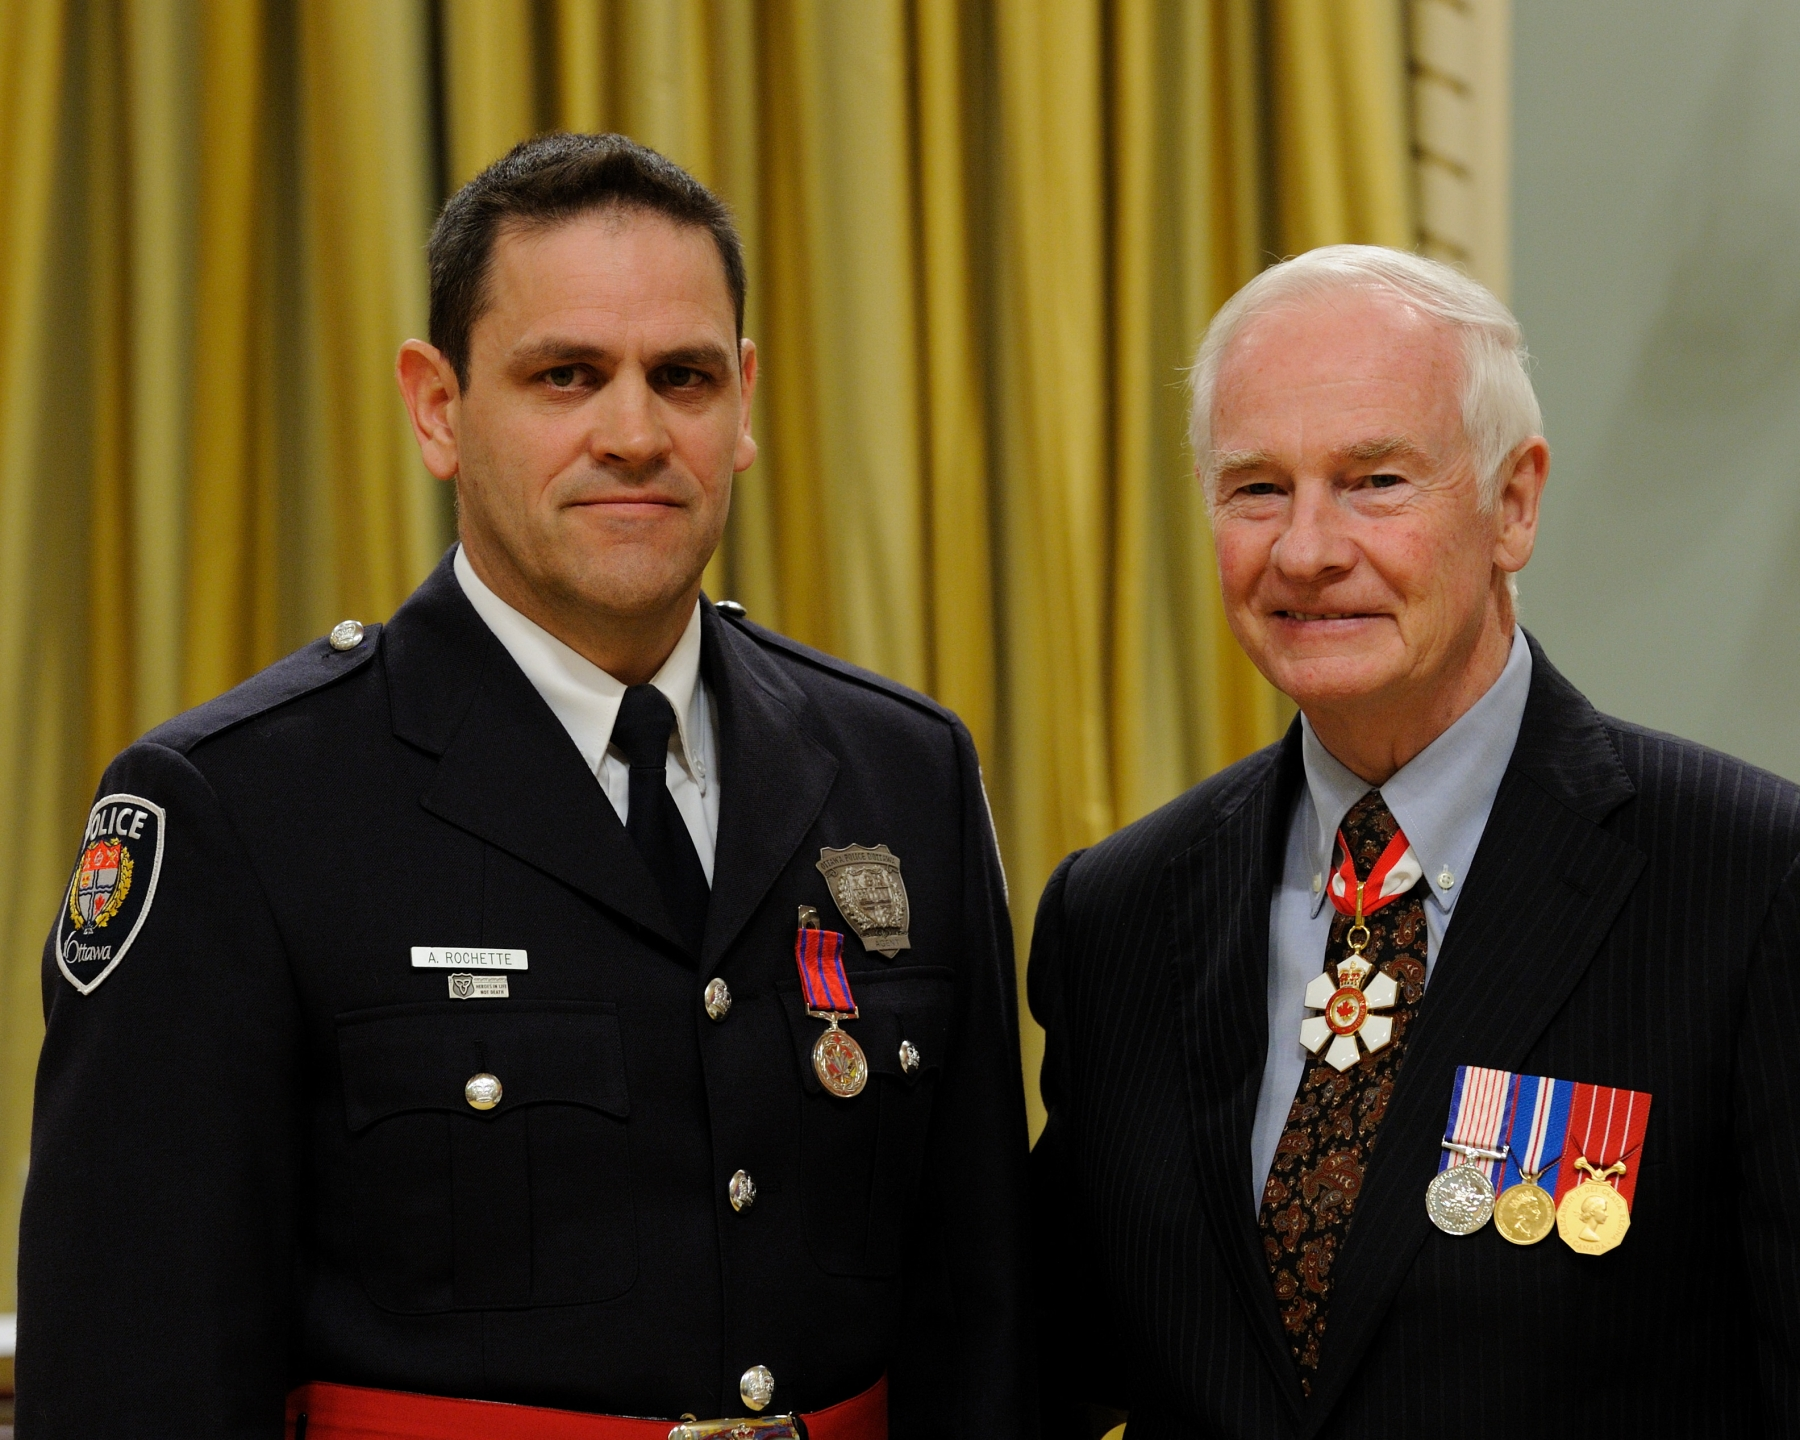 On December 8, 2005, Ottawa police constables Sean Ralph, M.B., and Alain Rochette, M.B. (pictured), risked their lives in an effort to rescue a woman who was being stabbed by a man armed with a hunting knife, in Ottawa, Ontario. When the officers arrived, the attacker grabbed the victim, dragged her inside her basement apartment and locked the door. After numerous attempts to break down the heavy door, the constables succeeded in kicking out a small opening at the bottom of it. Uncertain of what they would encounter on the other side, they crawled into the dark apartment. They spotted the aggressor, who finally responded to the officers' commands and surrendered his weapon. Sadly, the victim did not survive. Constable Ralph received his decoration at a previous ceremony.